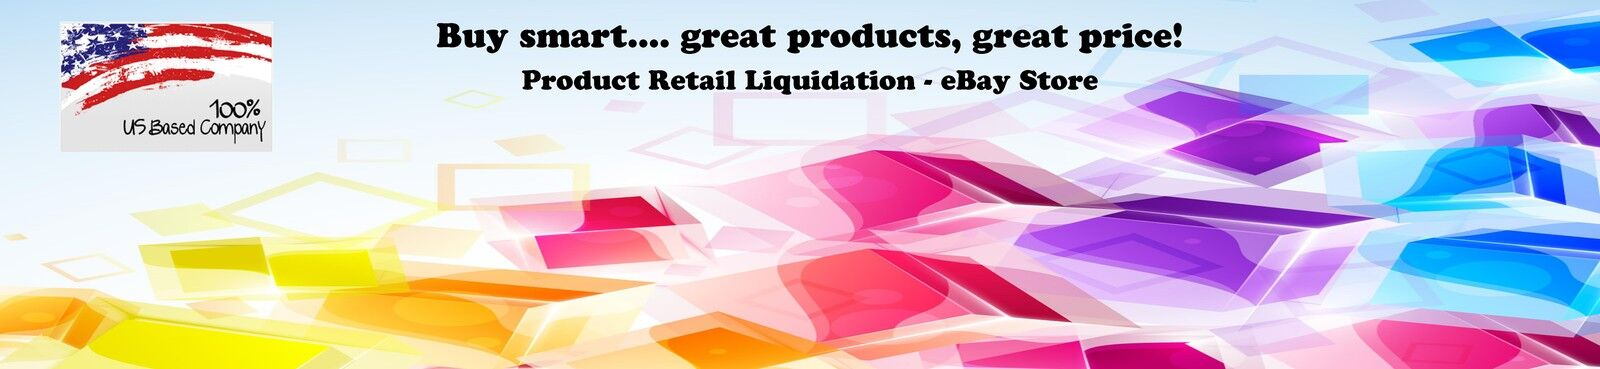 Product Retail Liquidation - Store